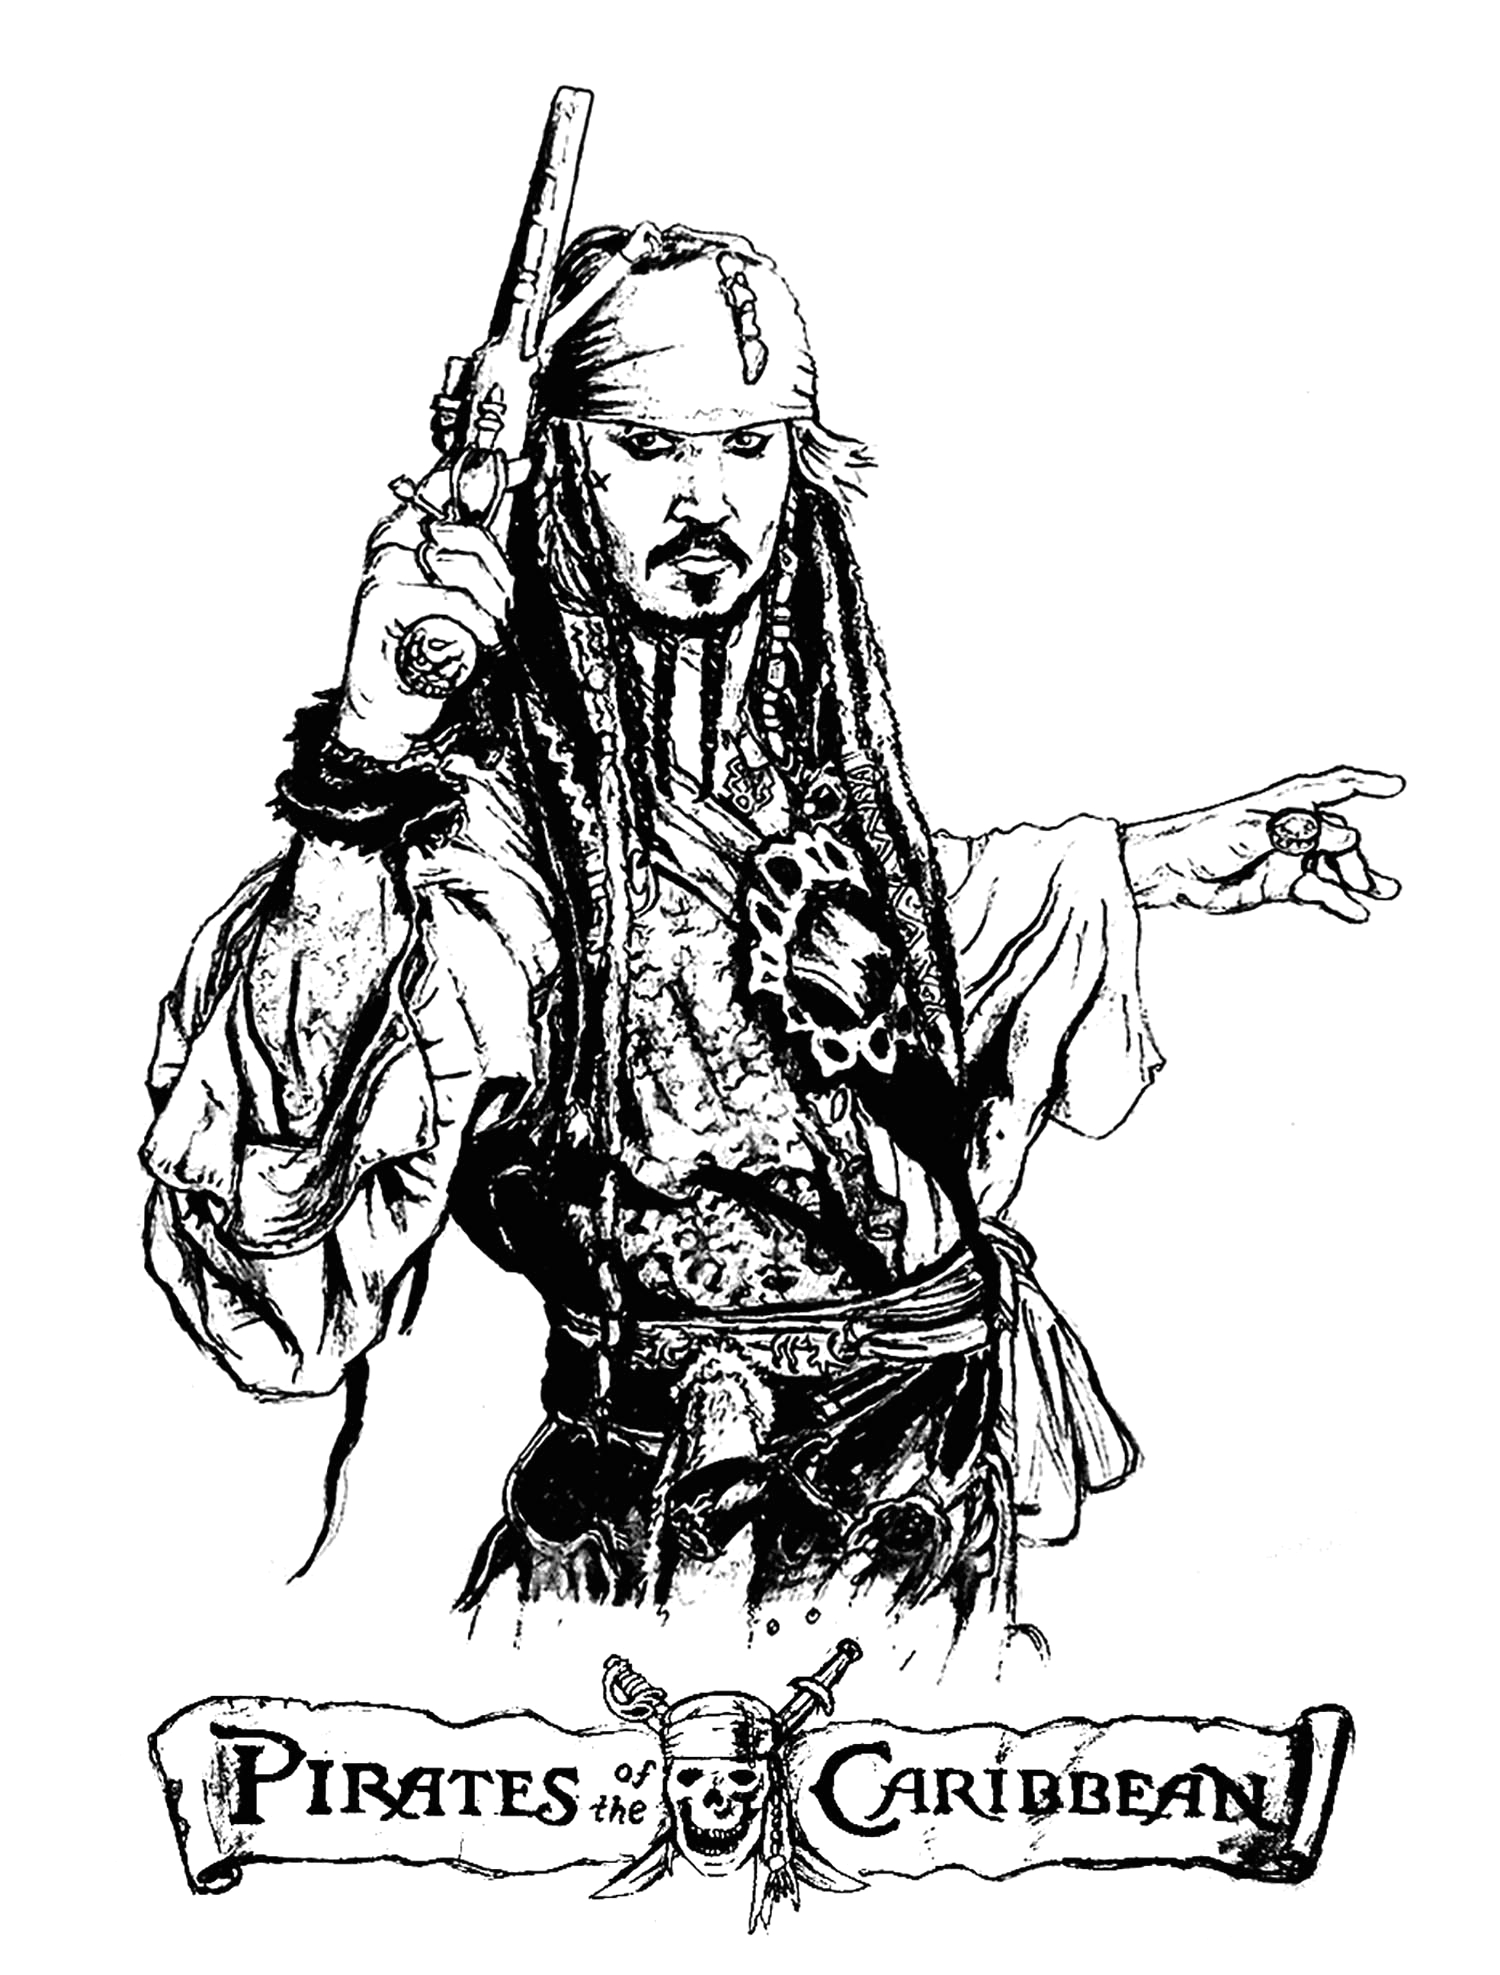 image=movie posters coloring page pirates of the caribbean 1